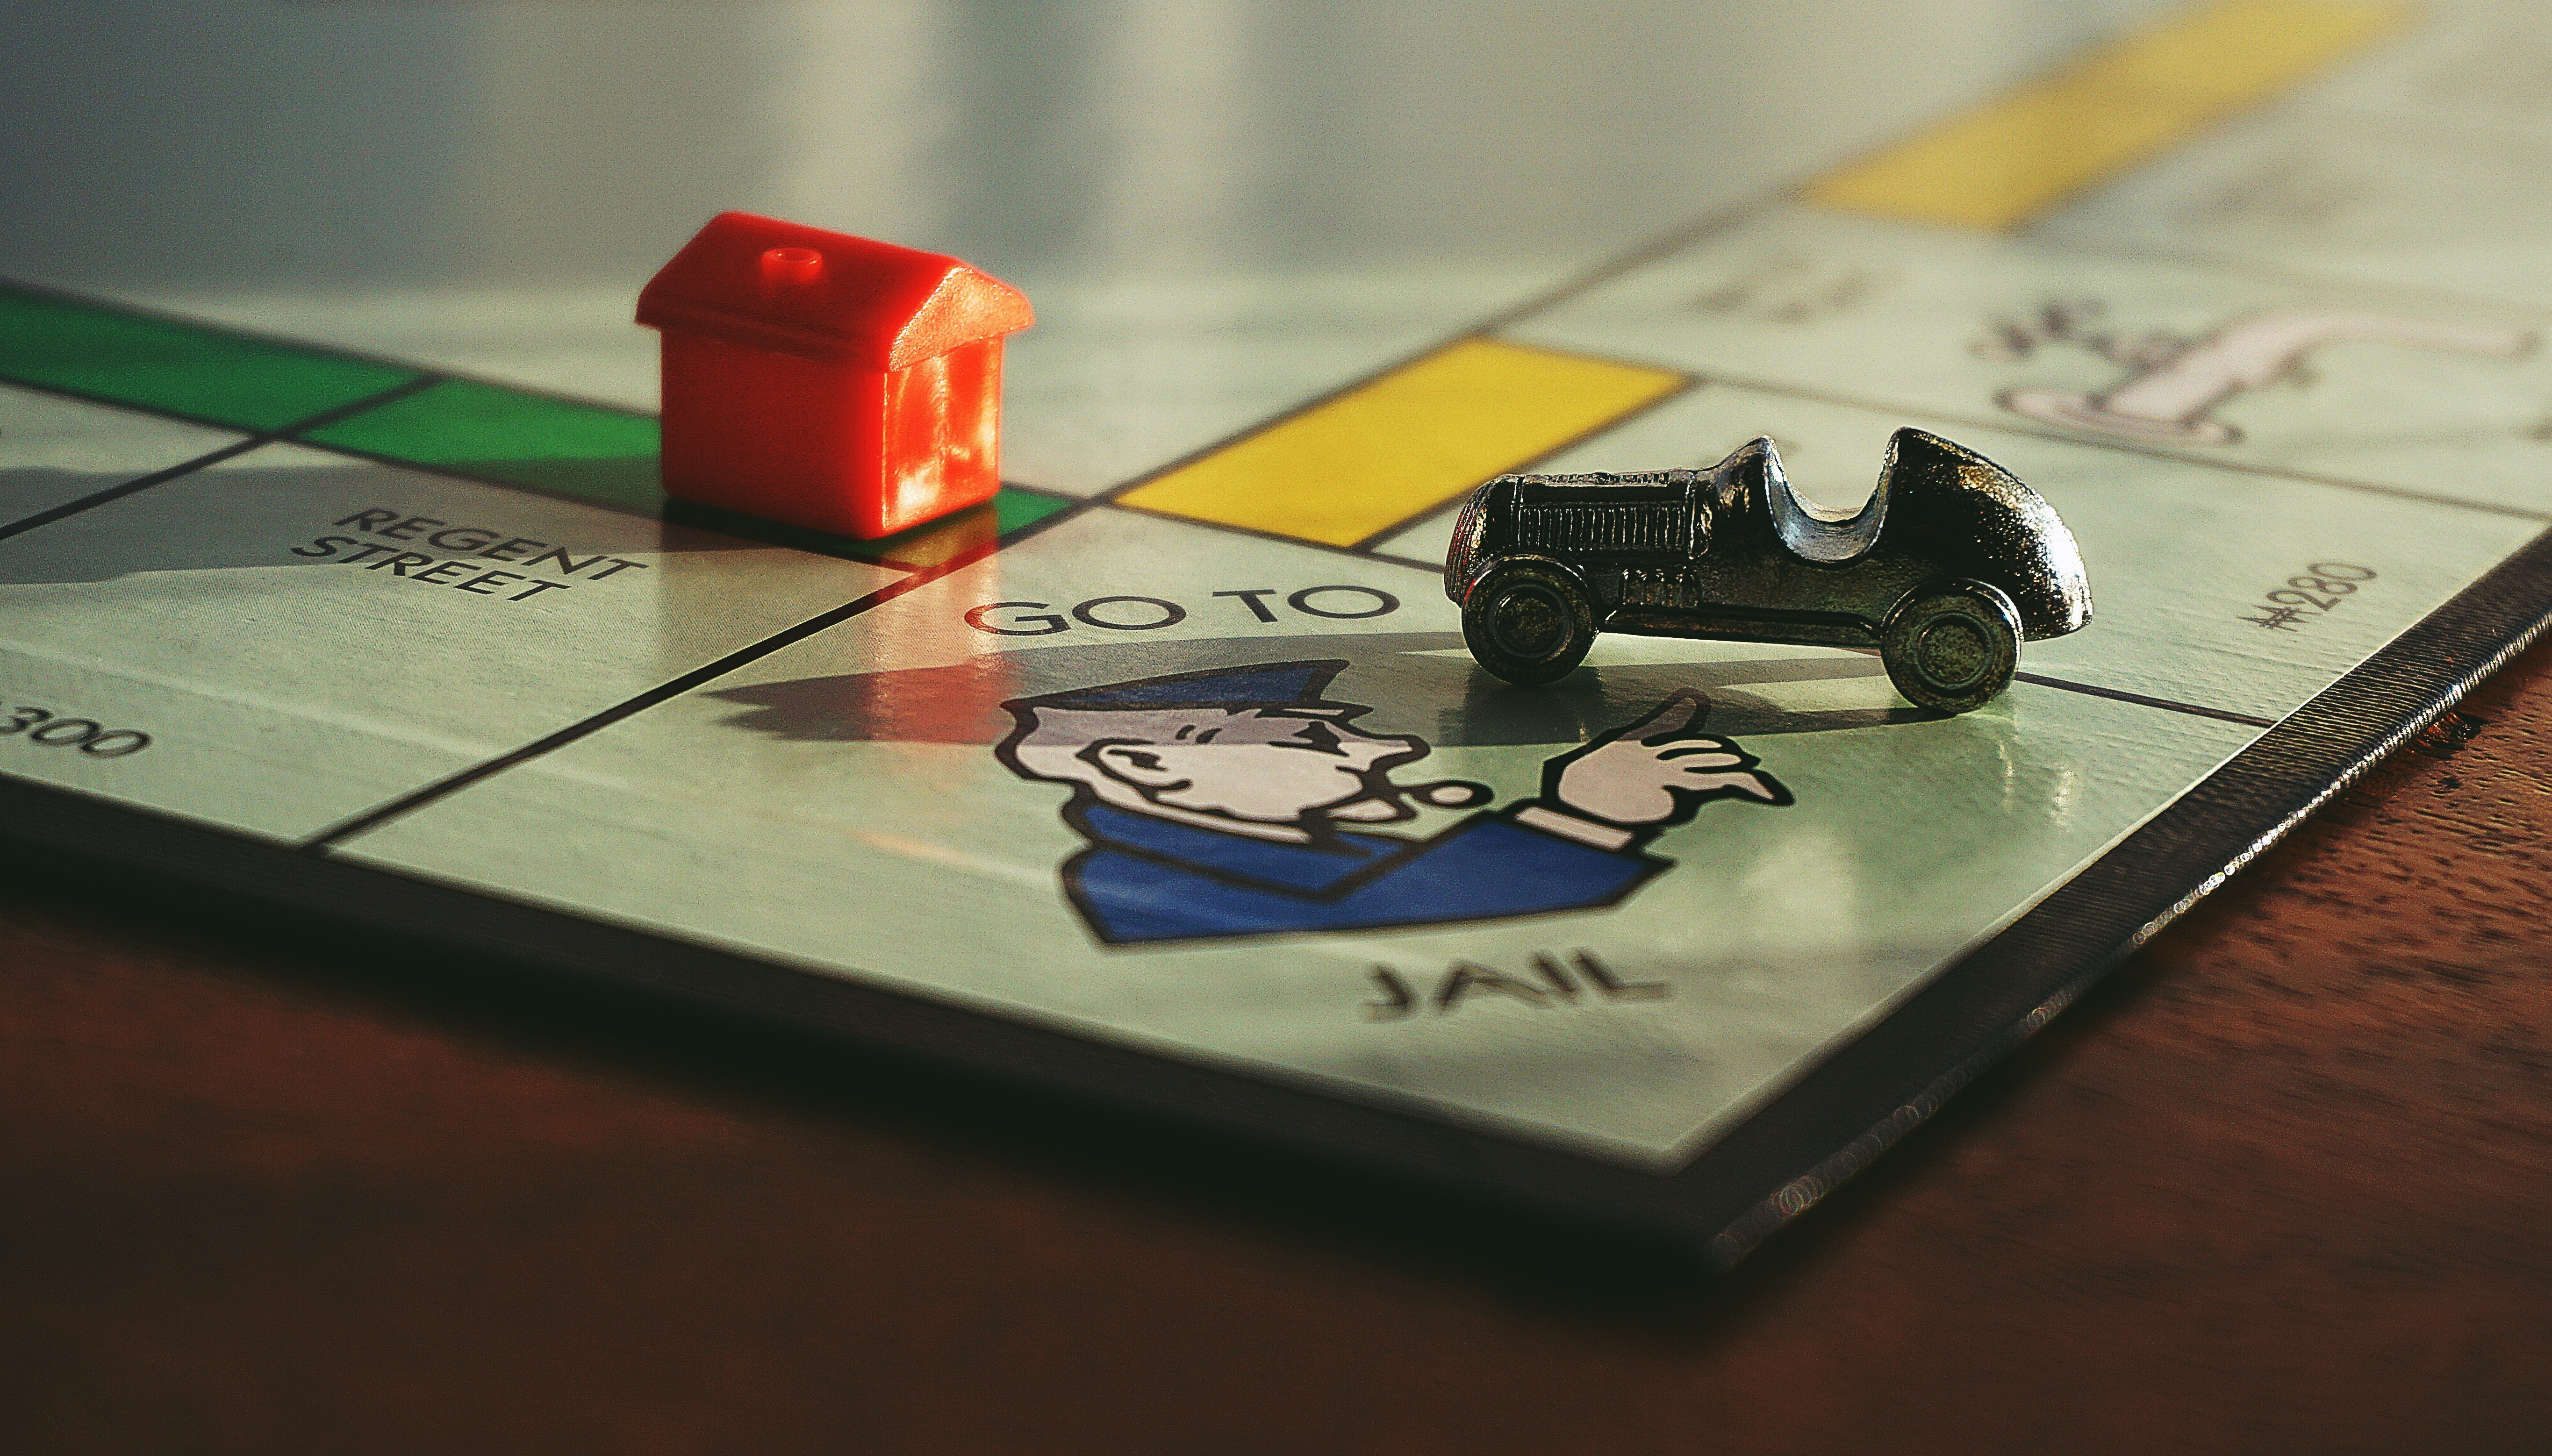 Monopoly board game 'Go to Jail'